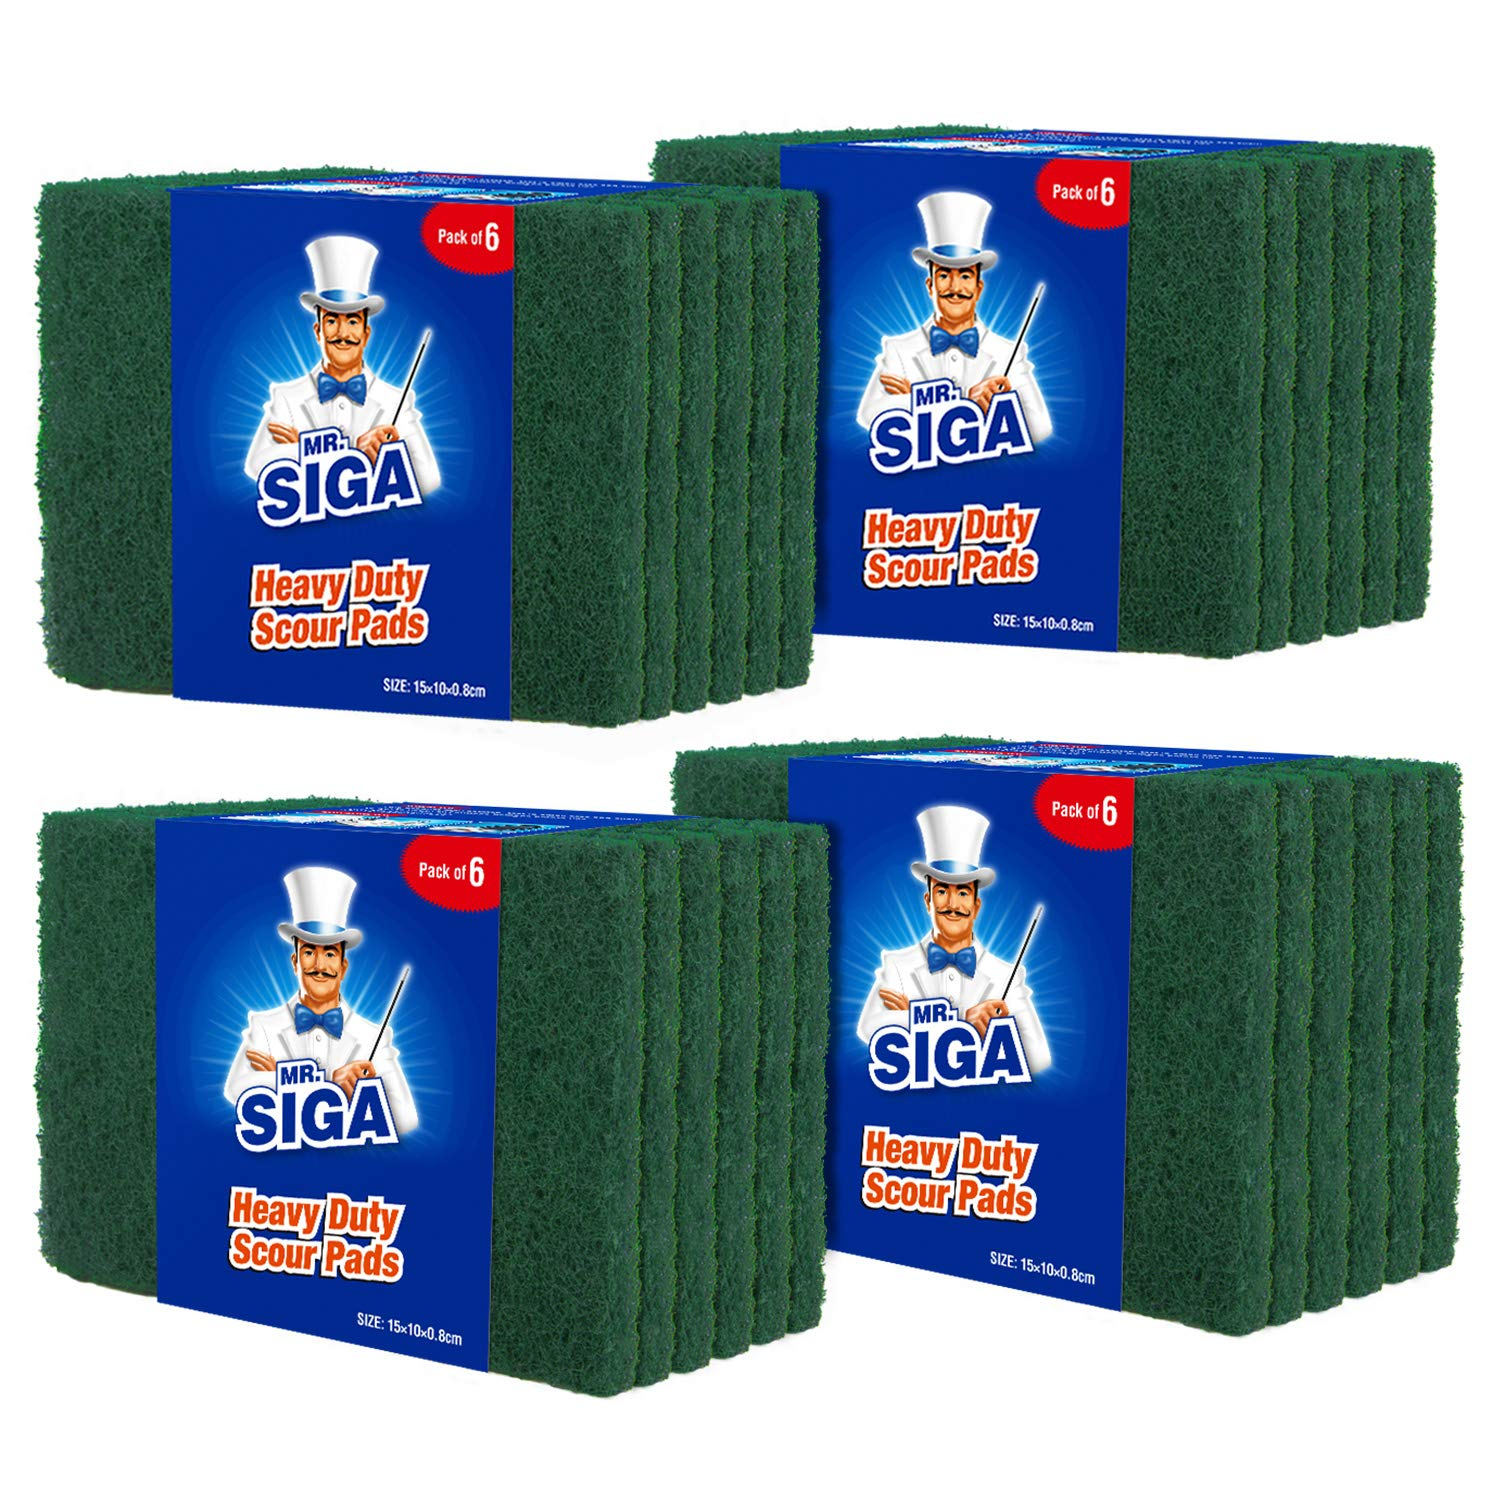 MR.SIGA Heavy Duty Scouring Pads, Household Scrubber for Kitchen, Sink, Dish, 24-Pack, 3.9 x 5.9 inch (10 x 15 cm), Green by MR.SIGA (Image #1)